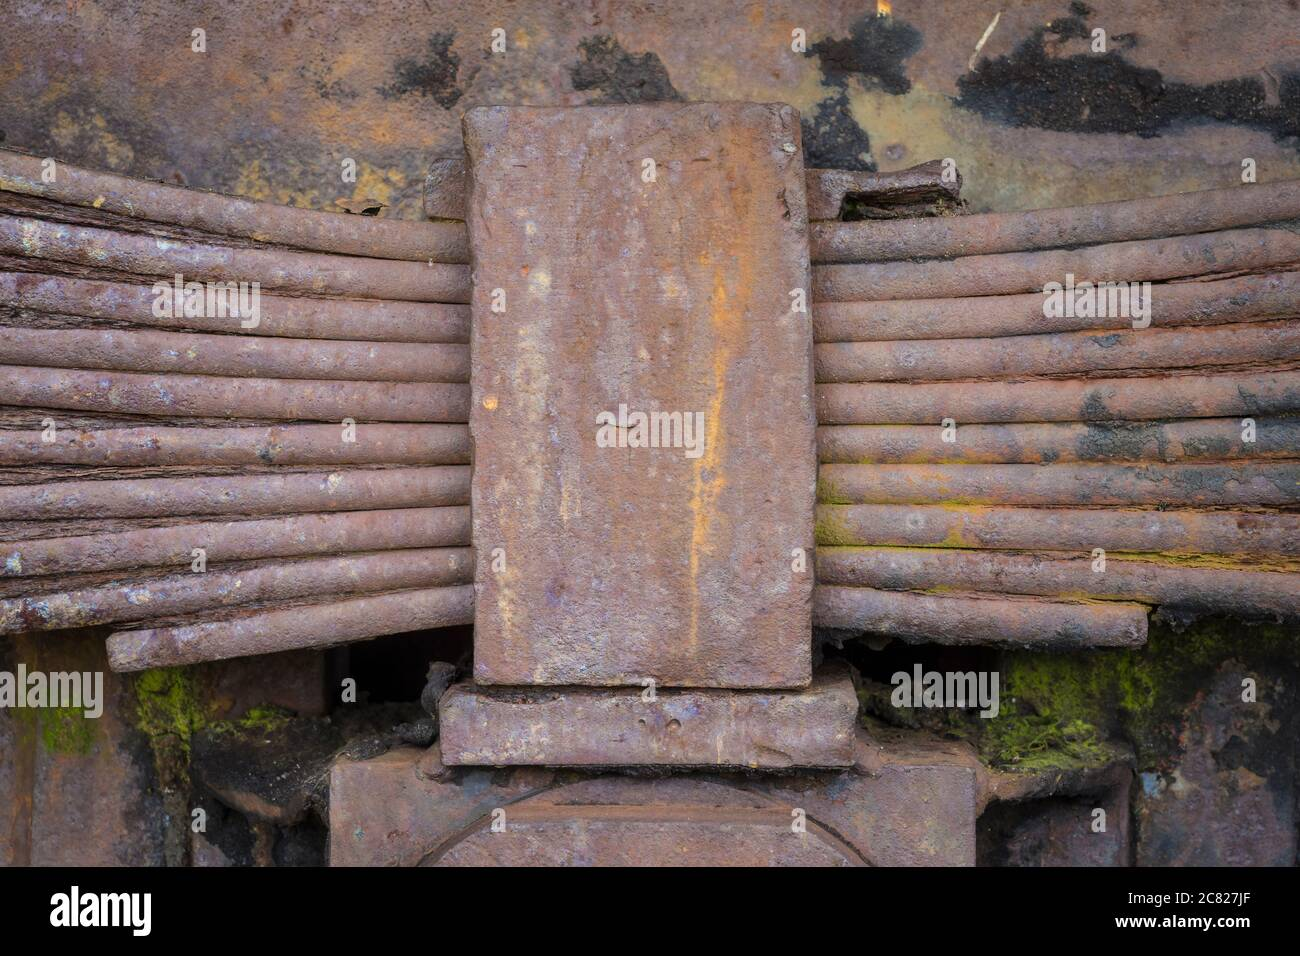 leaf spring unit of a historic vehicle Stock Photo